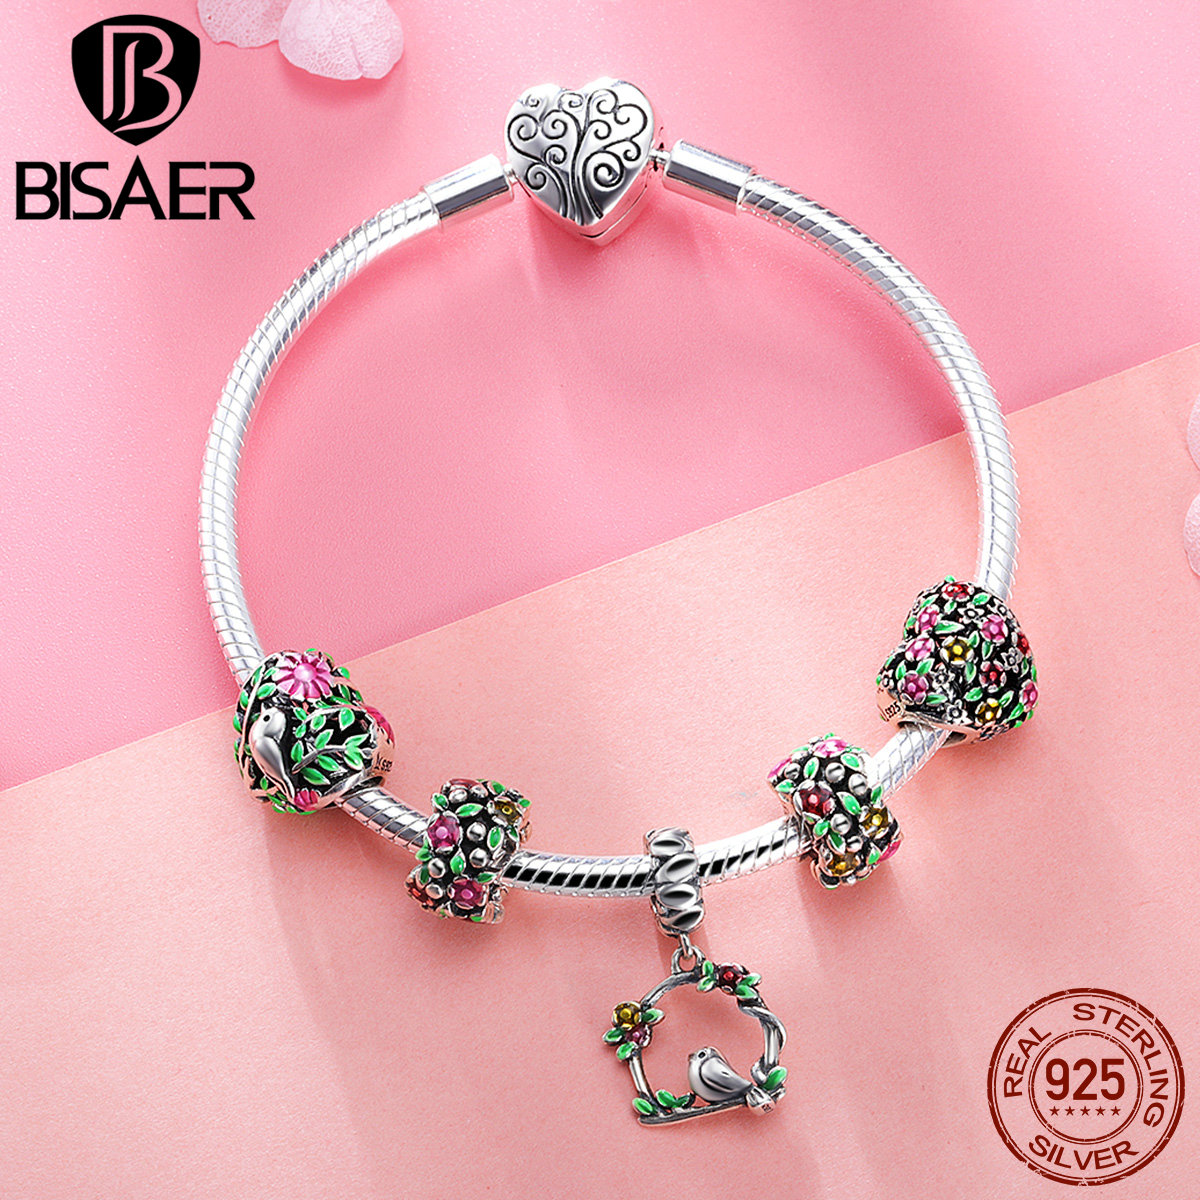 BISAER 2018 New 925 Sterling Silver Bird In Bush Heart Green Summer Collection Charm Bracelet Female Brand Beads Bangle GXB804 bisaer 7pcs 925 sterling silver heart key and locket heart pendant brand charm bracelet for women wedding silver bangle gxb811